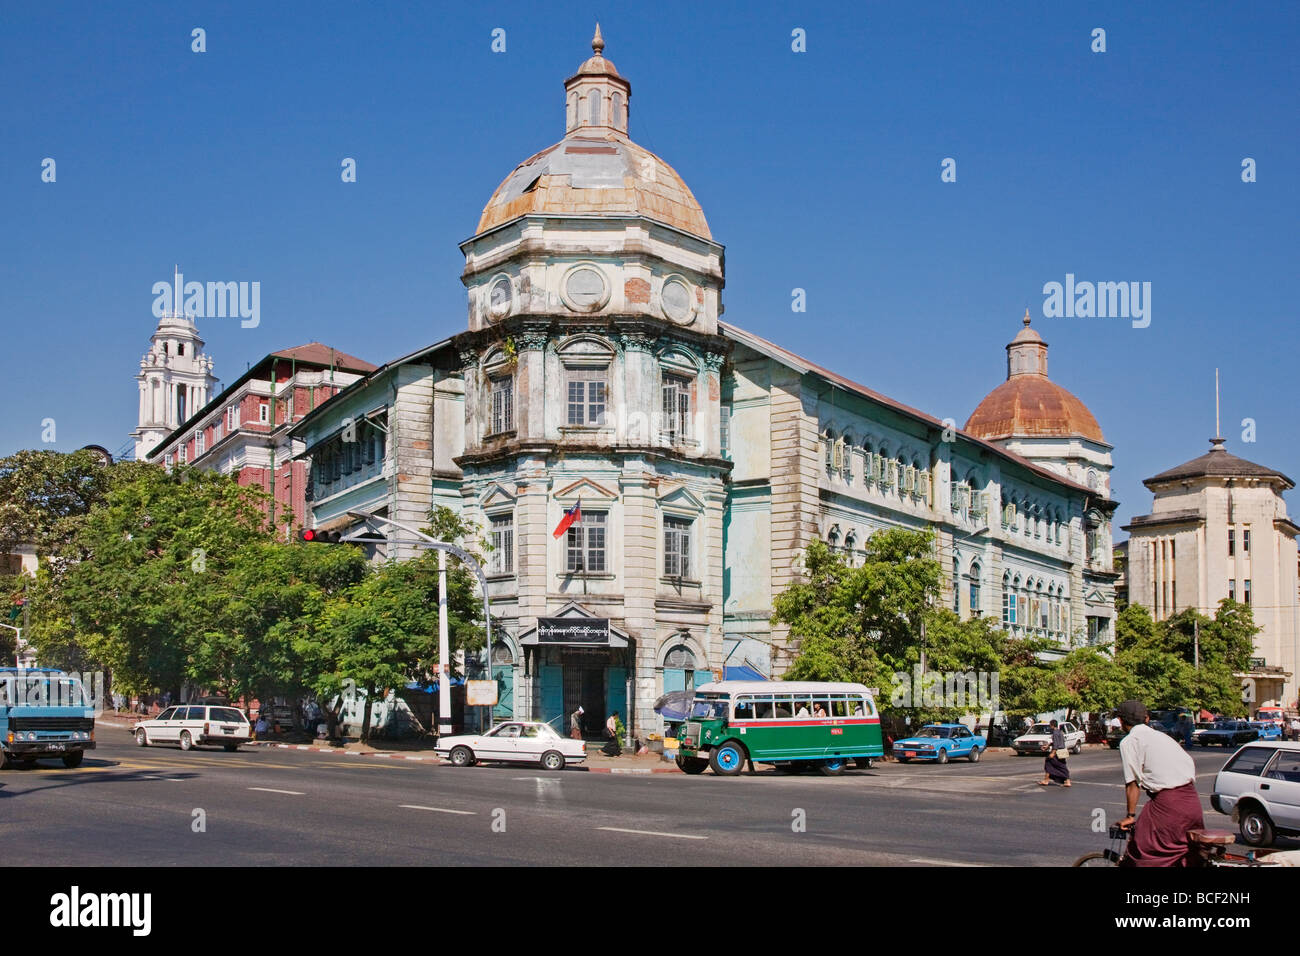 Myanmar, Burma, Yangon. The faded splendour of buildings in Yangon denotes the countrys colonial past under British - Stock Image